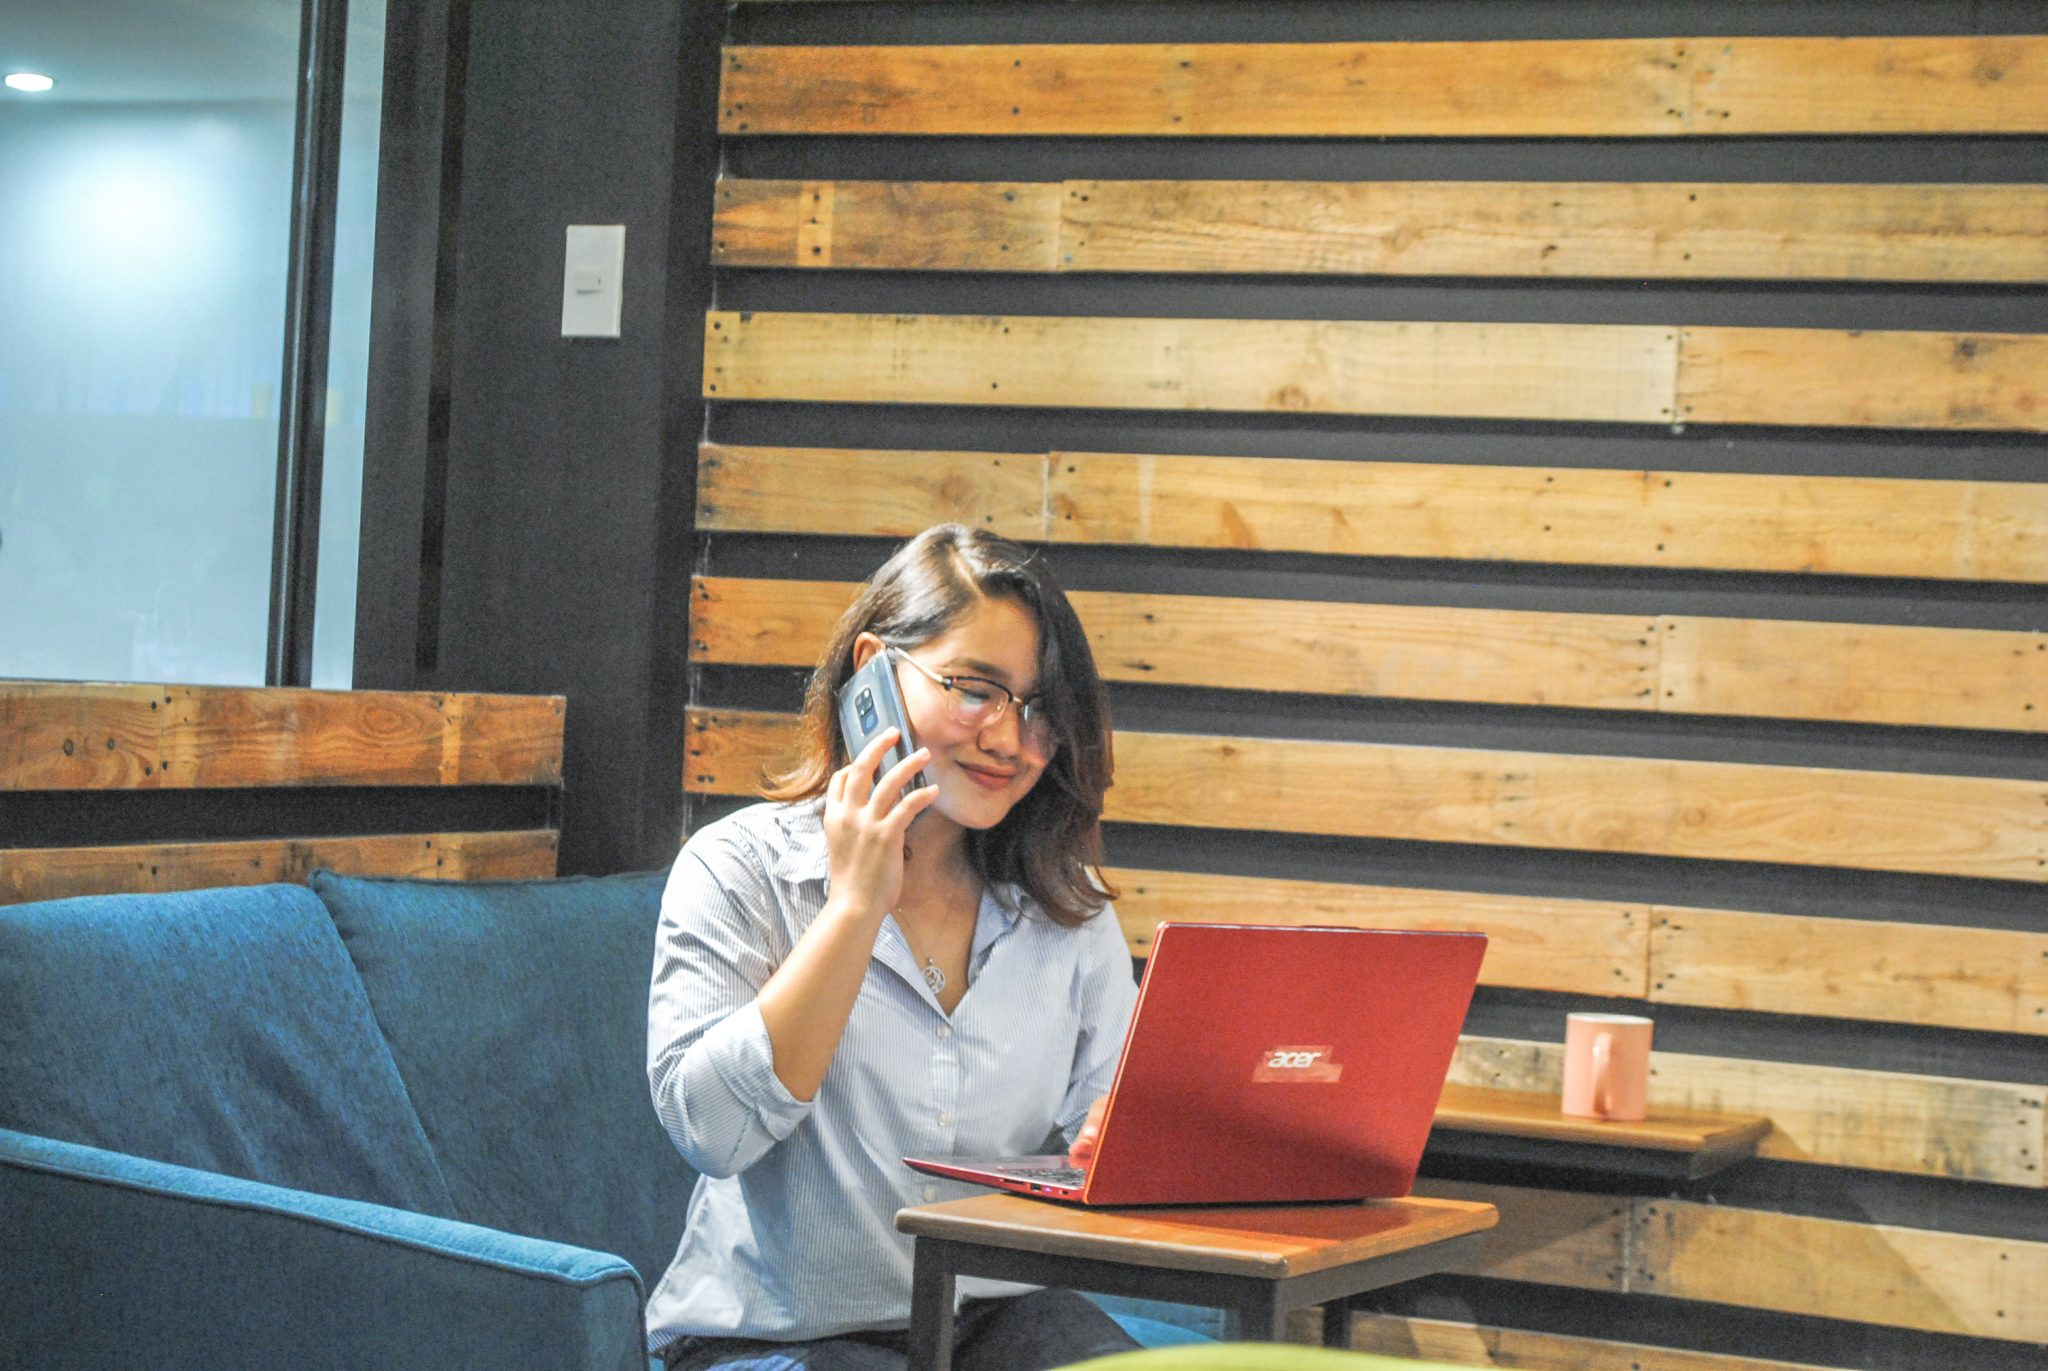 11 - How Can Startups Benefit from using a Coworking Space in Manila?